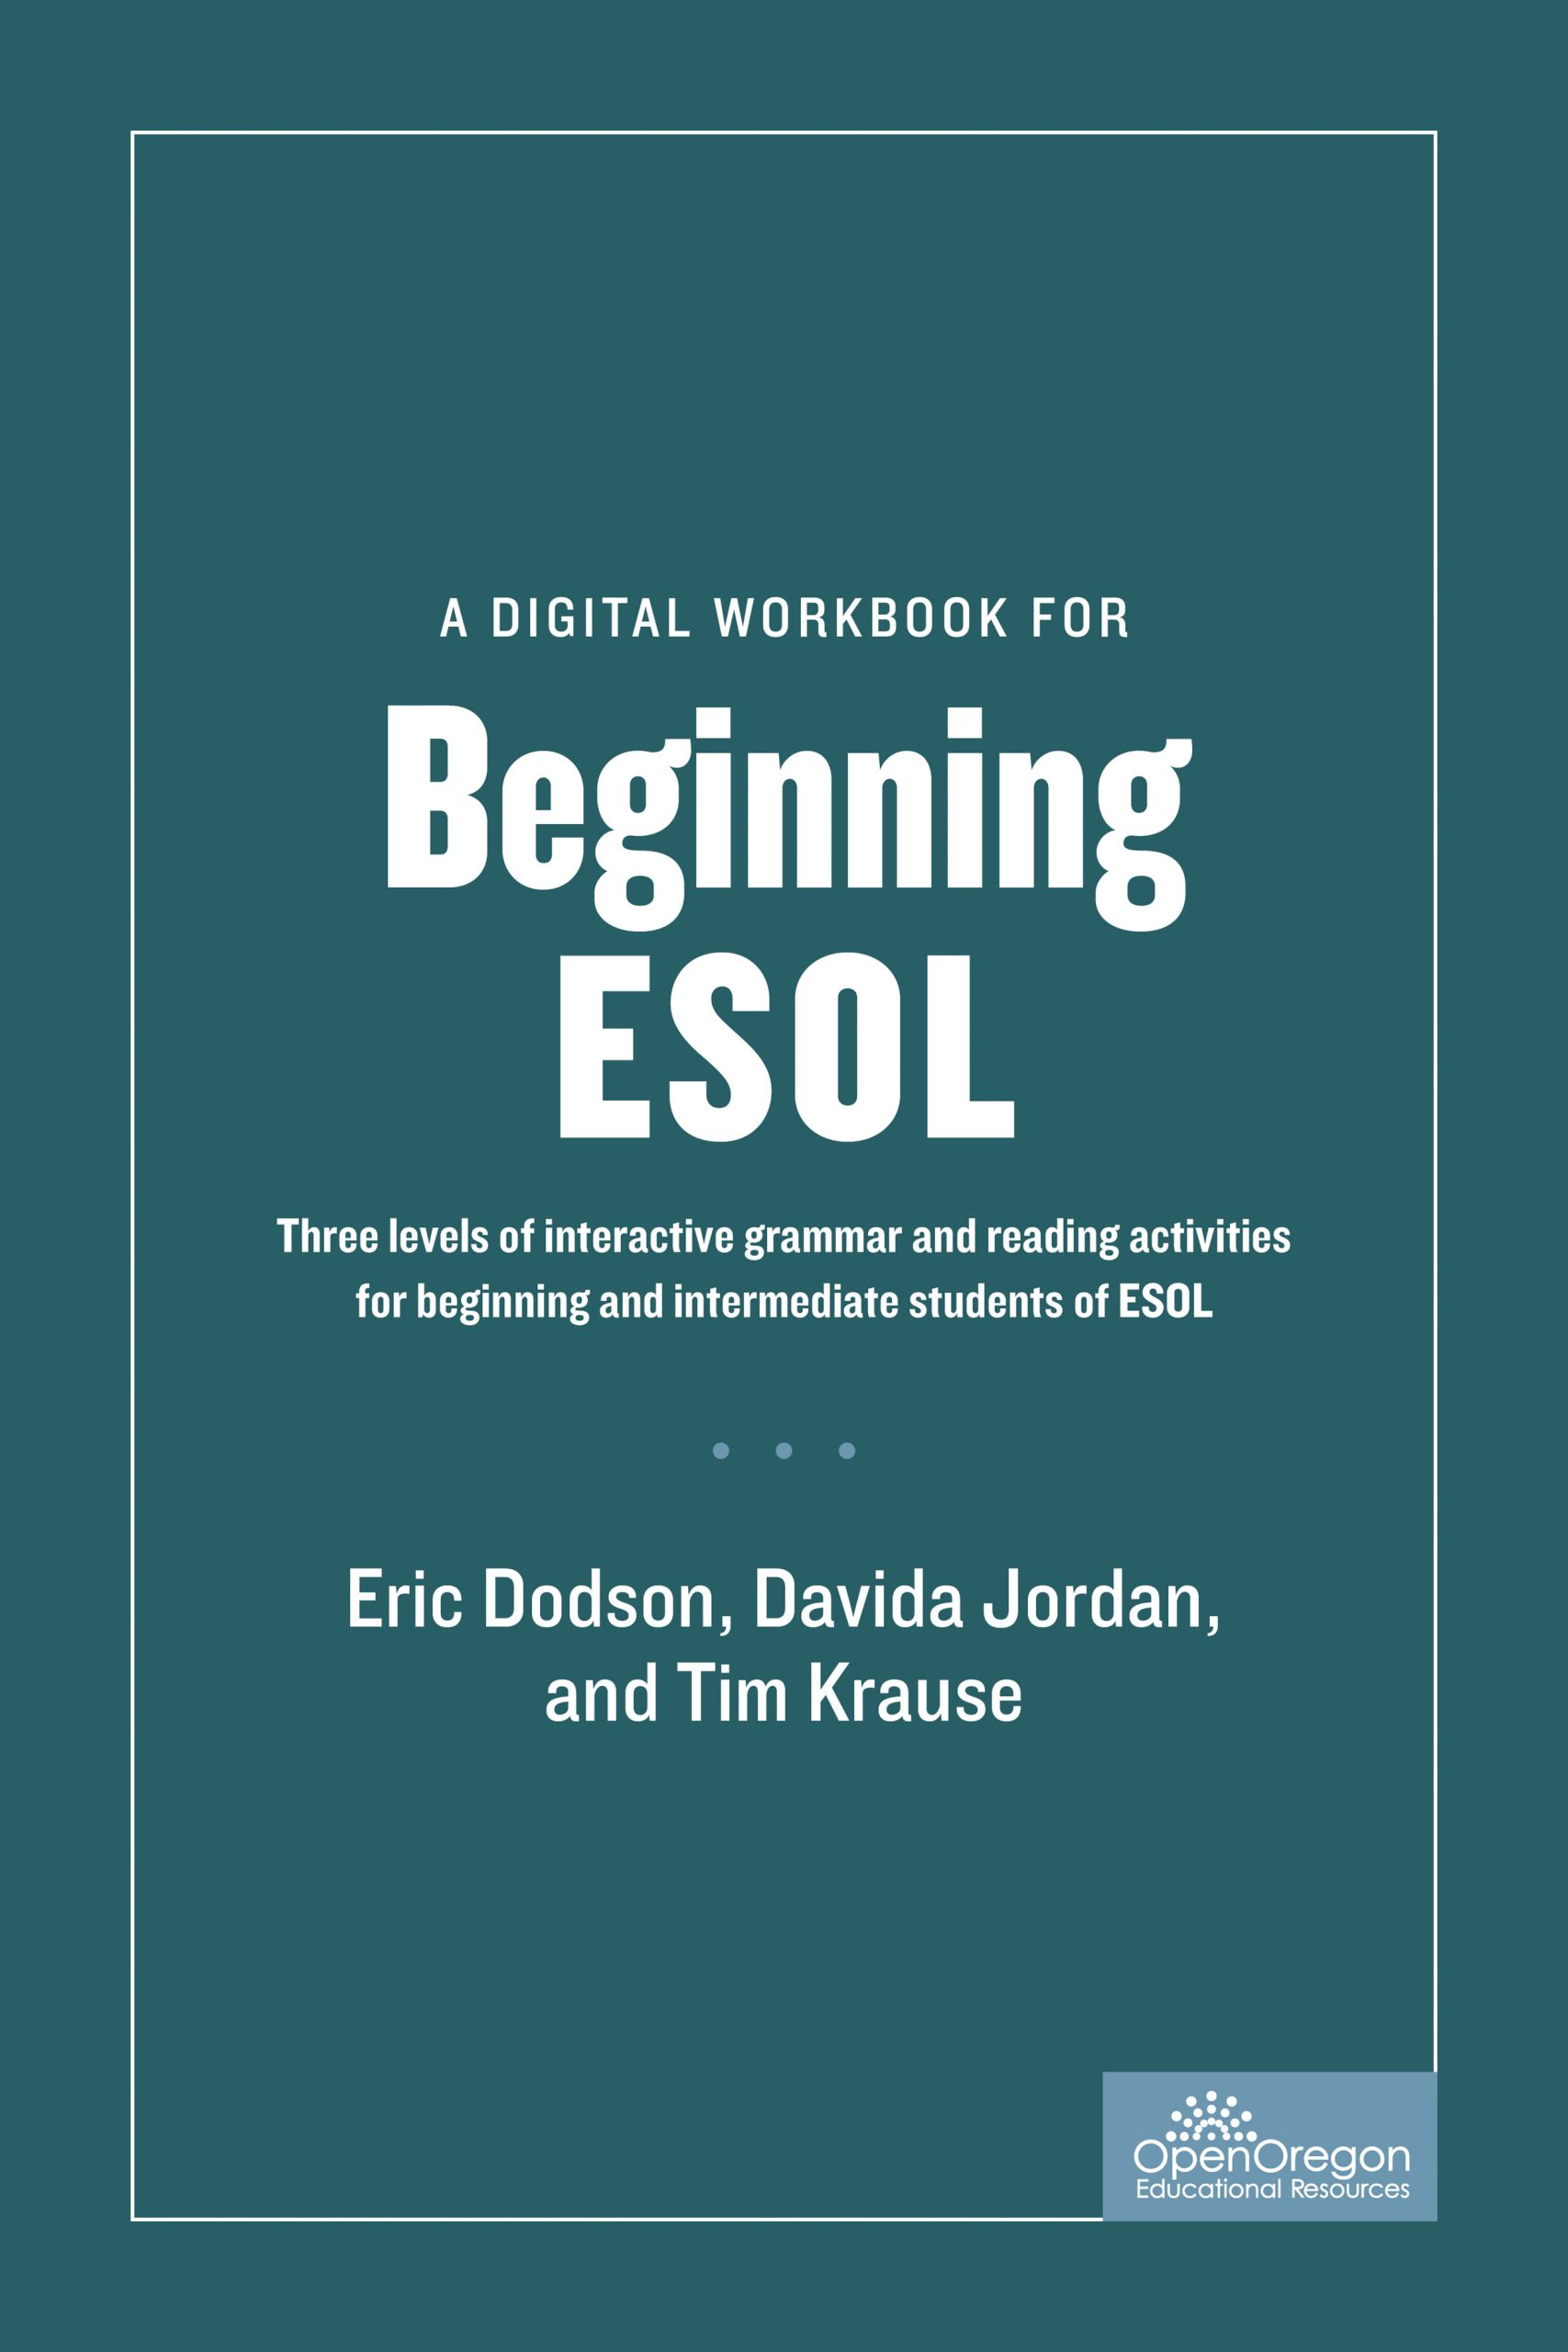 A Digital Workbook for Beginning ESOL